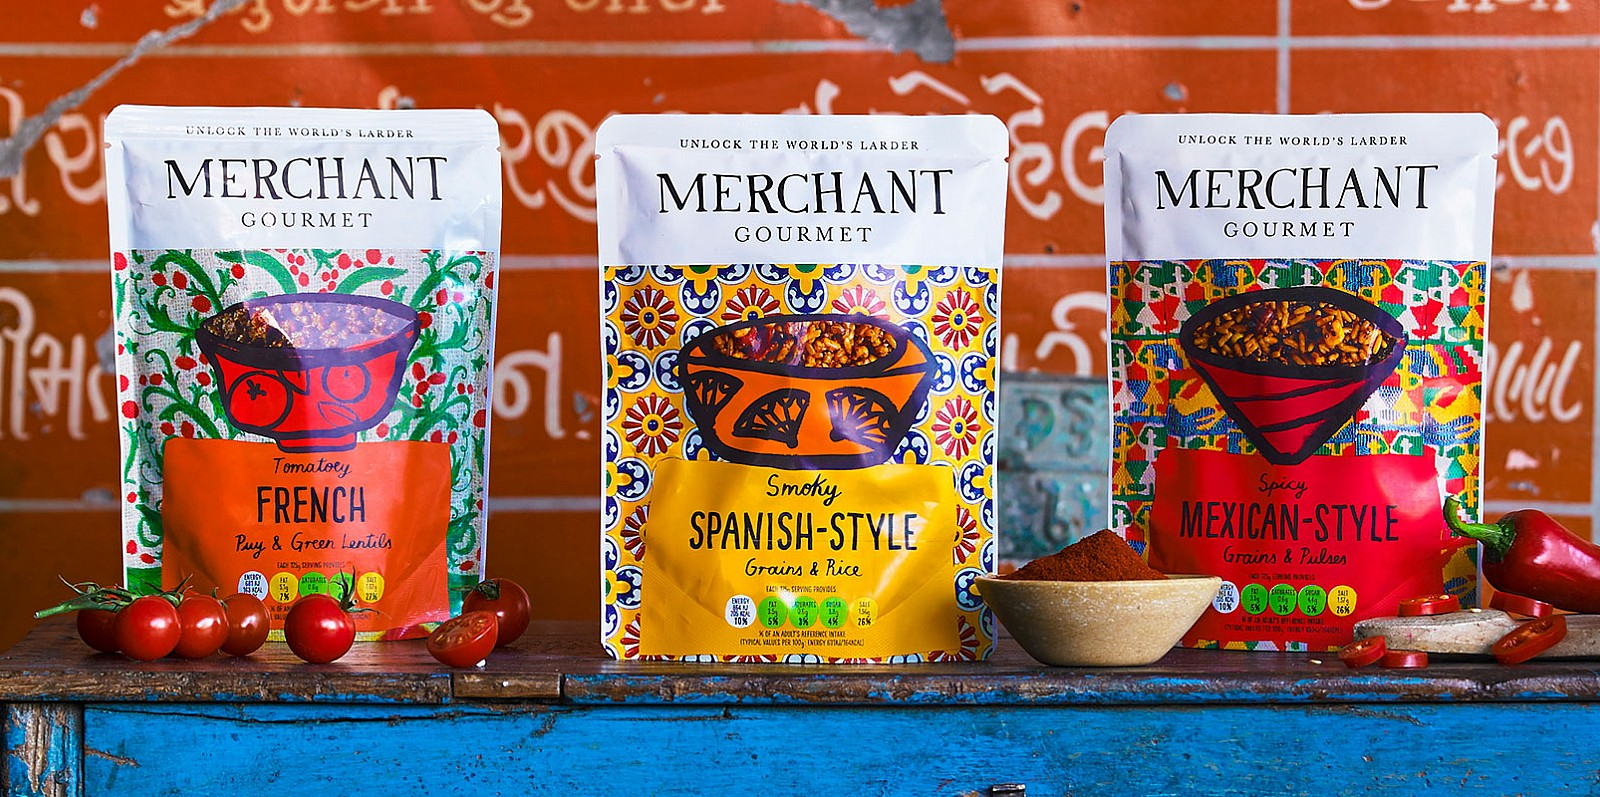 Merchant Gourmet Products French Spanish-Style and Mexican-Style